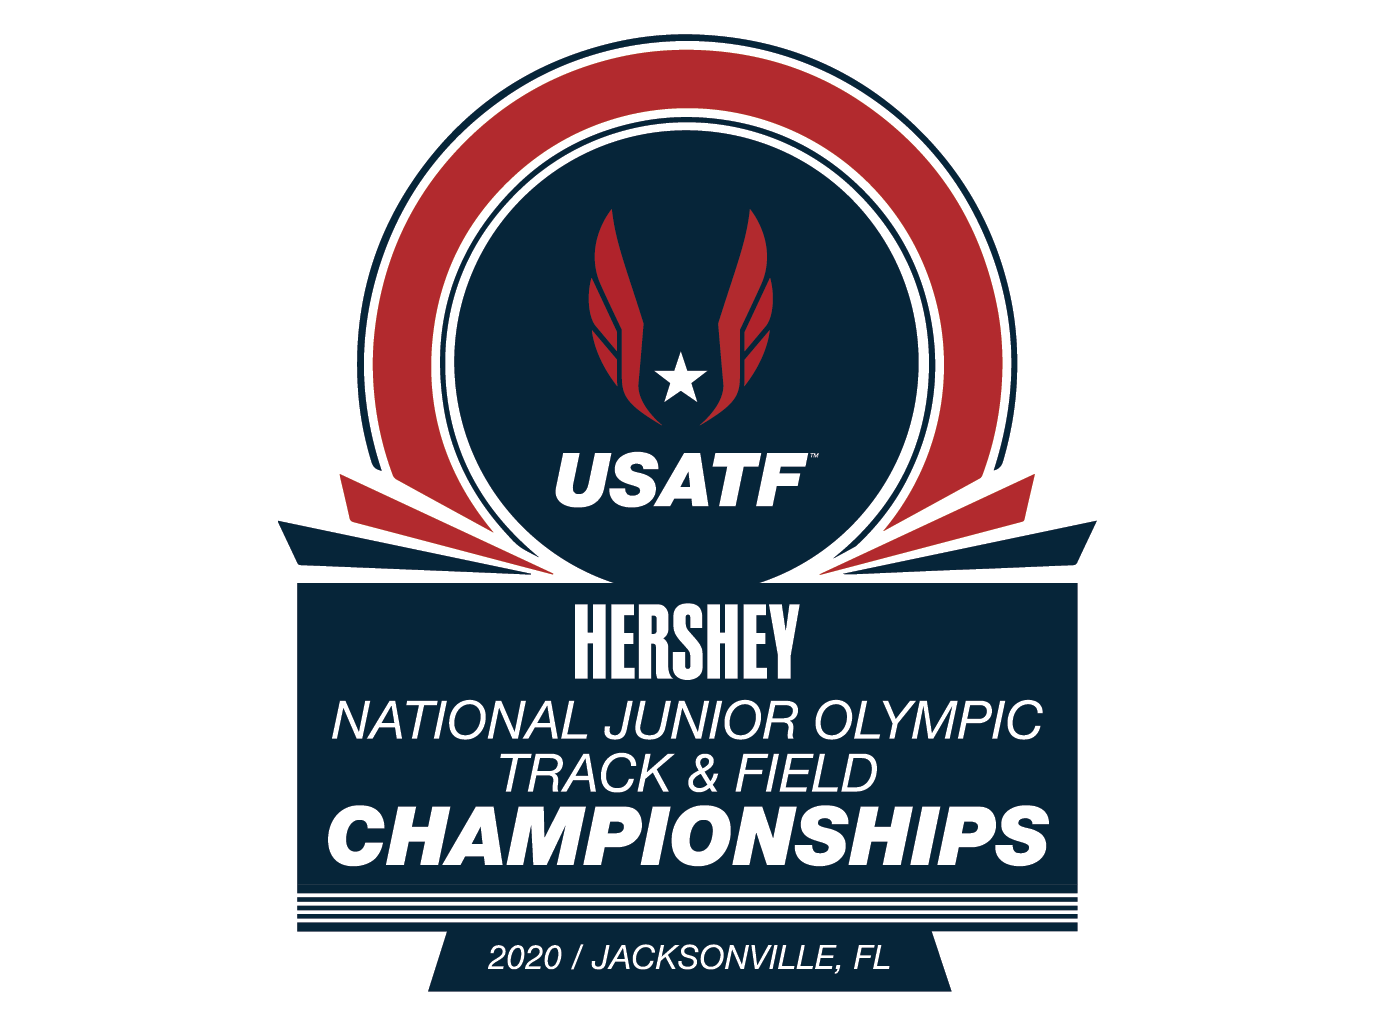 National Junior Olympic Championships